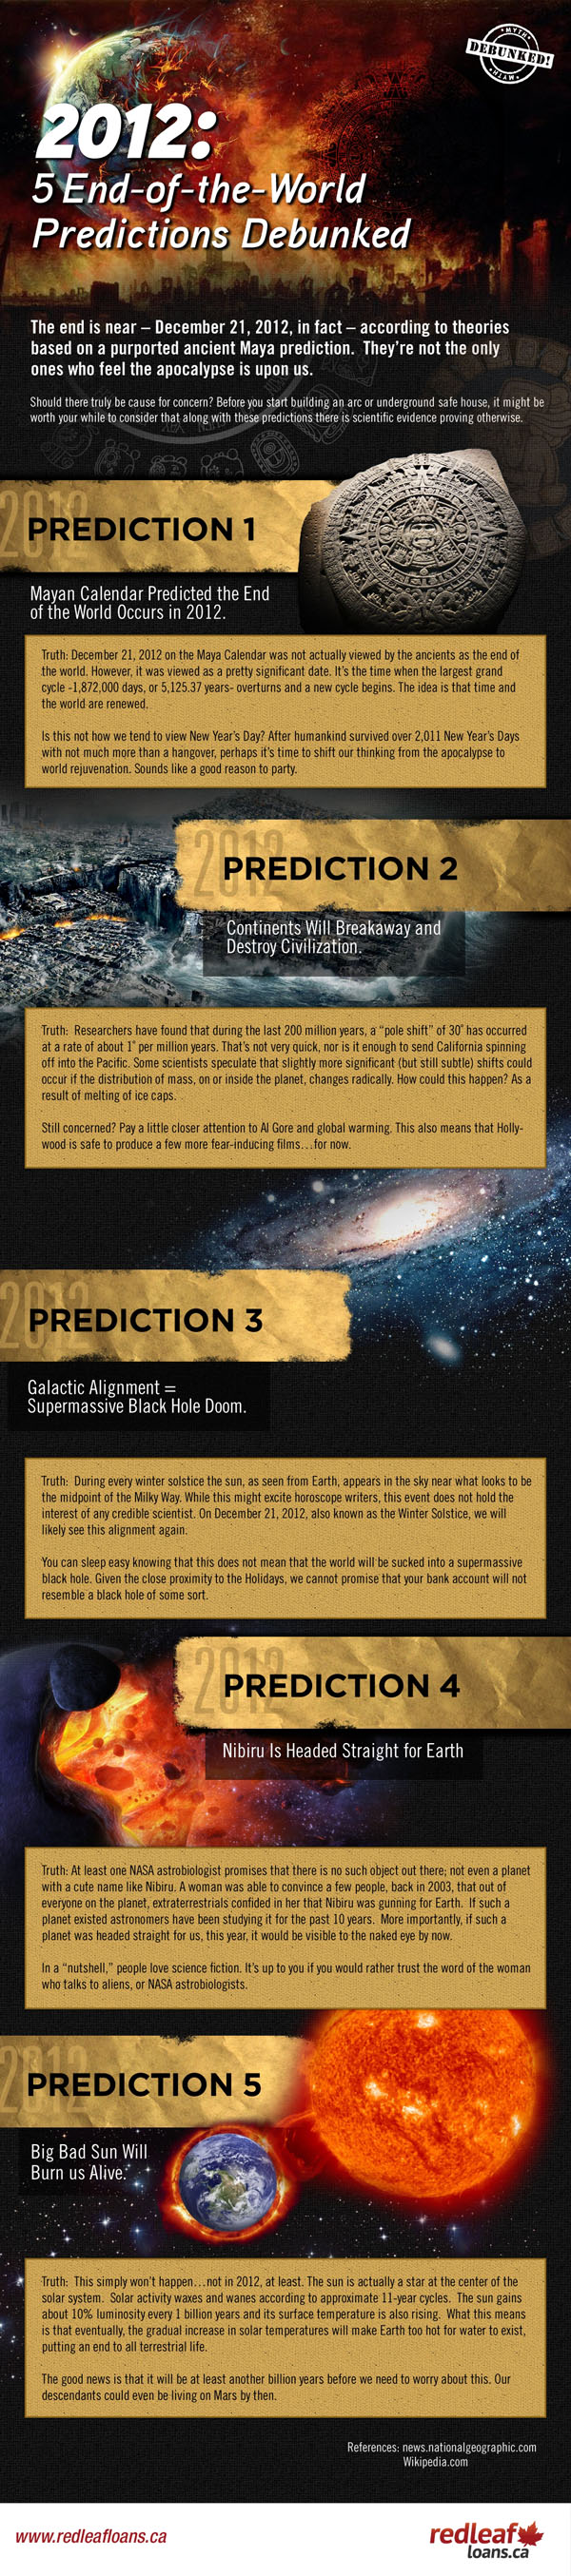 5 End-of-the-World Predictions Debunked